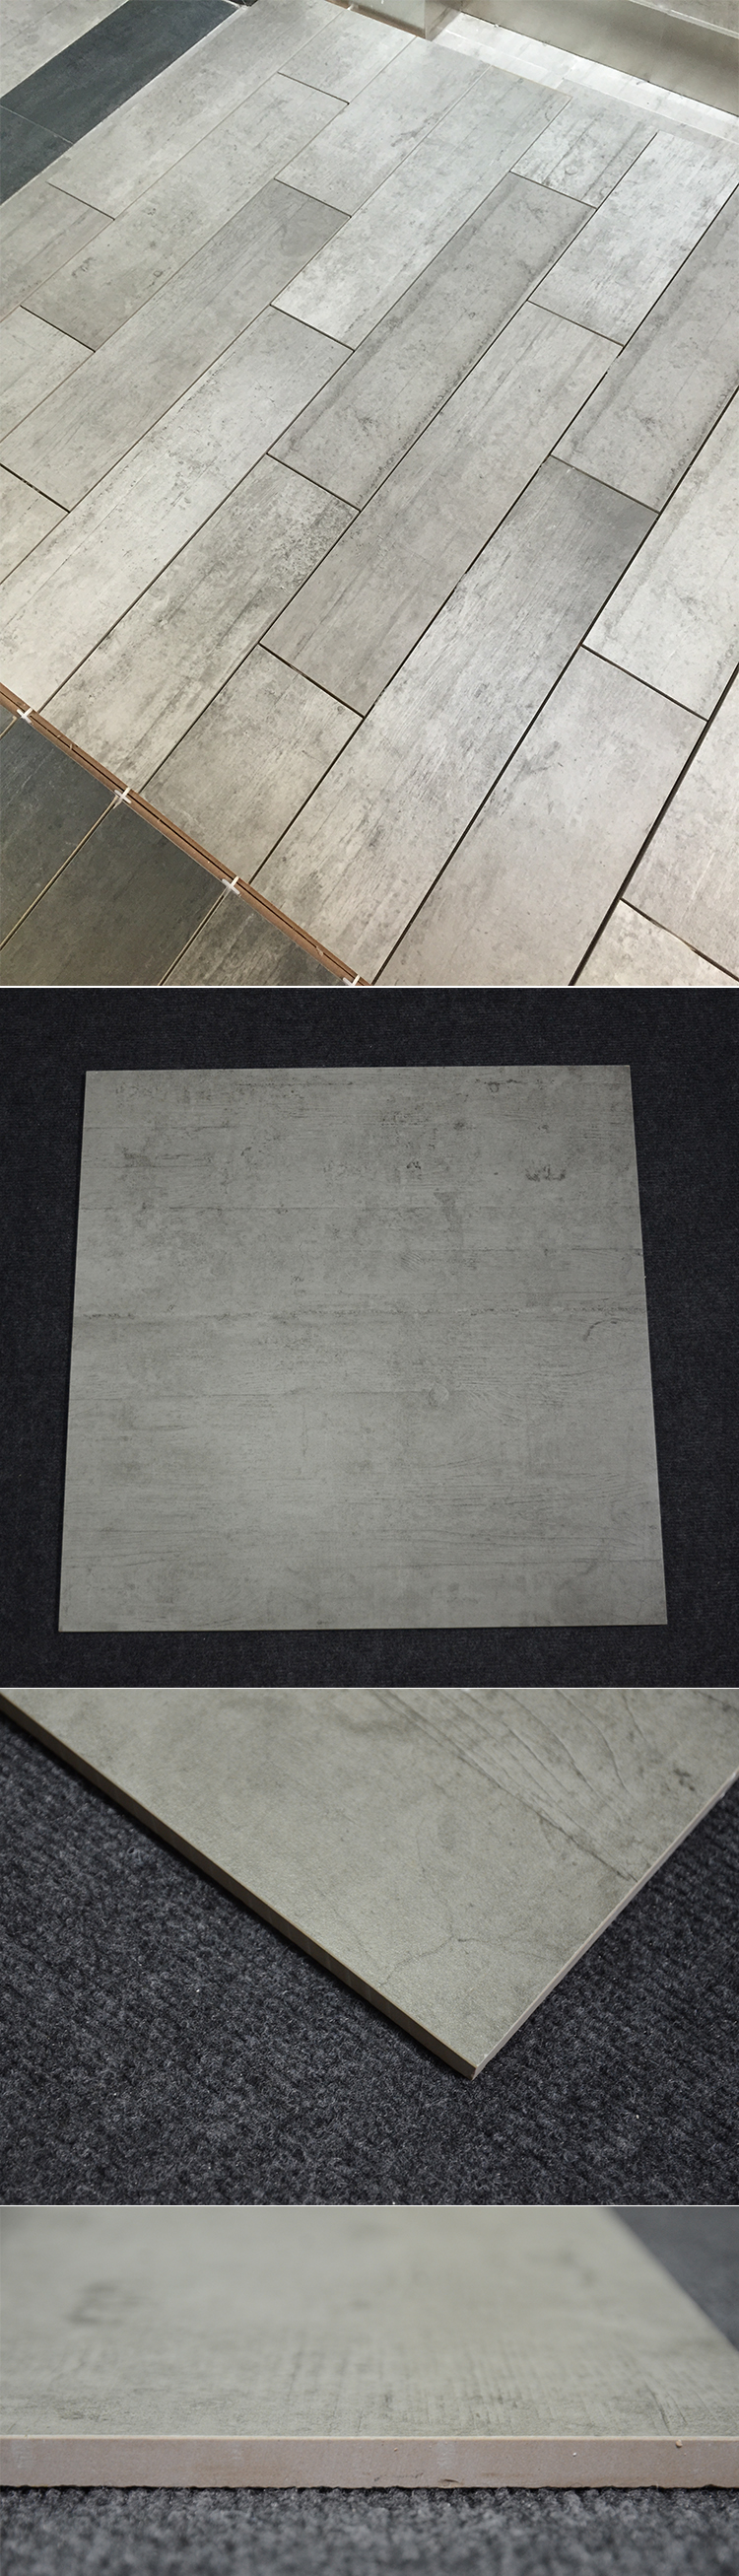 HCM6007 double loaded marazzi non slip porcelain tile